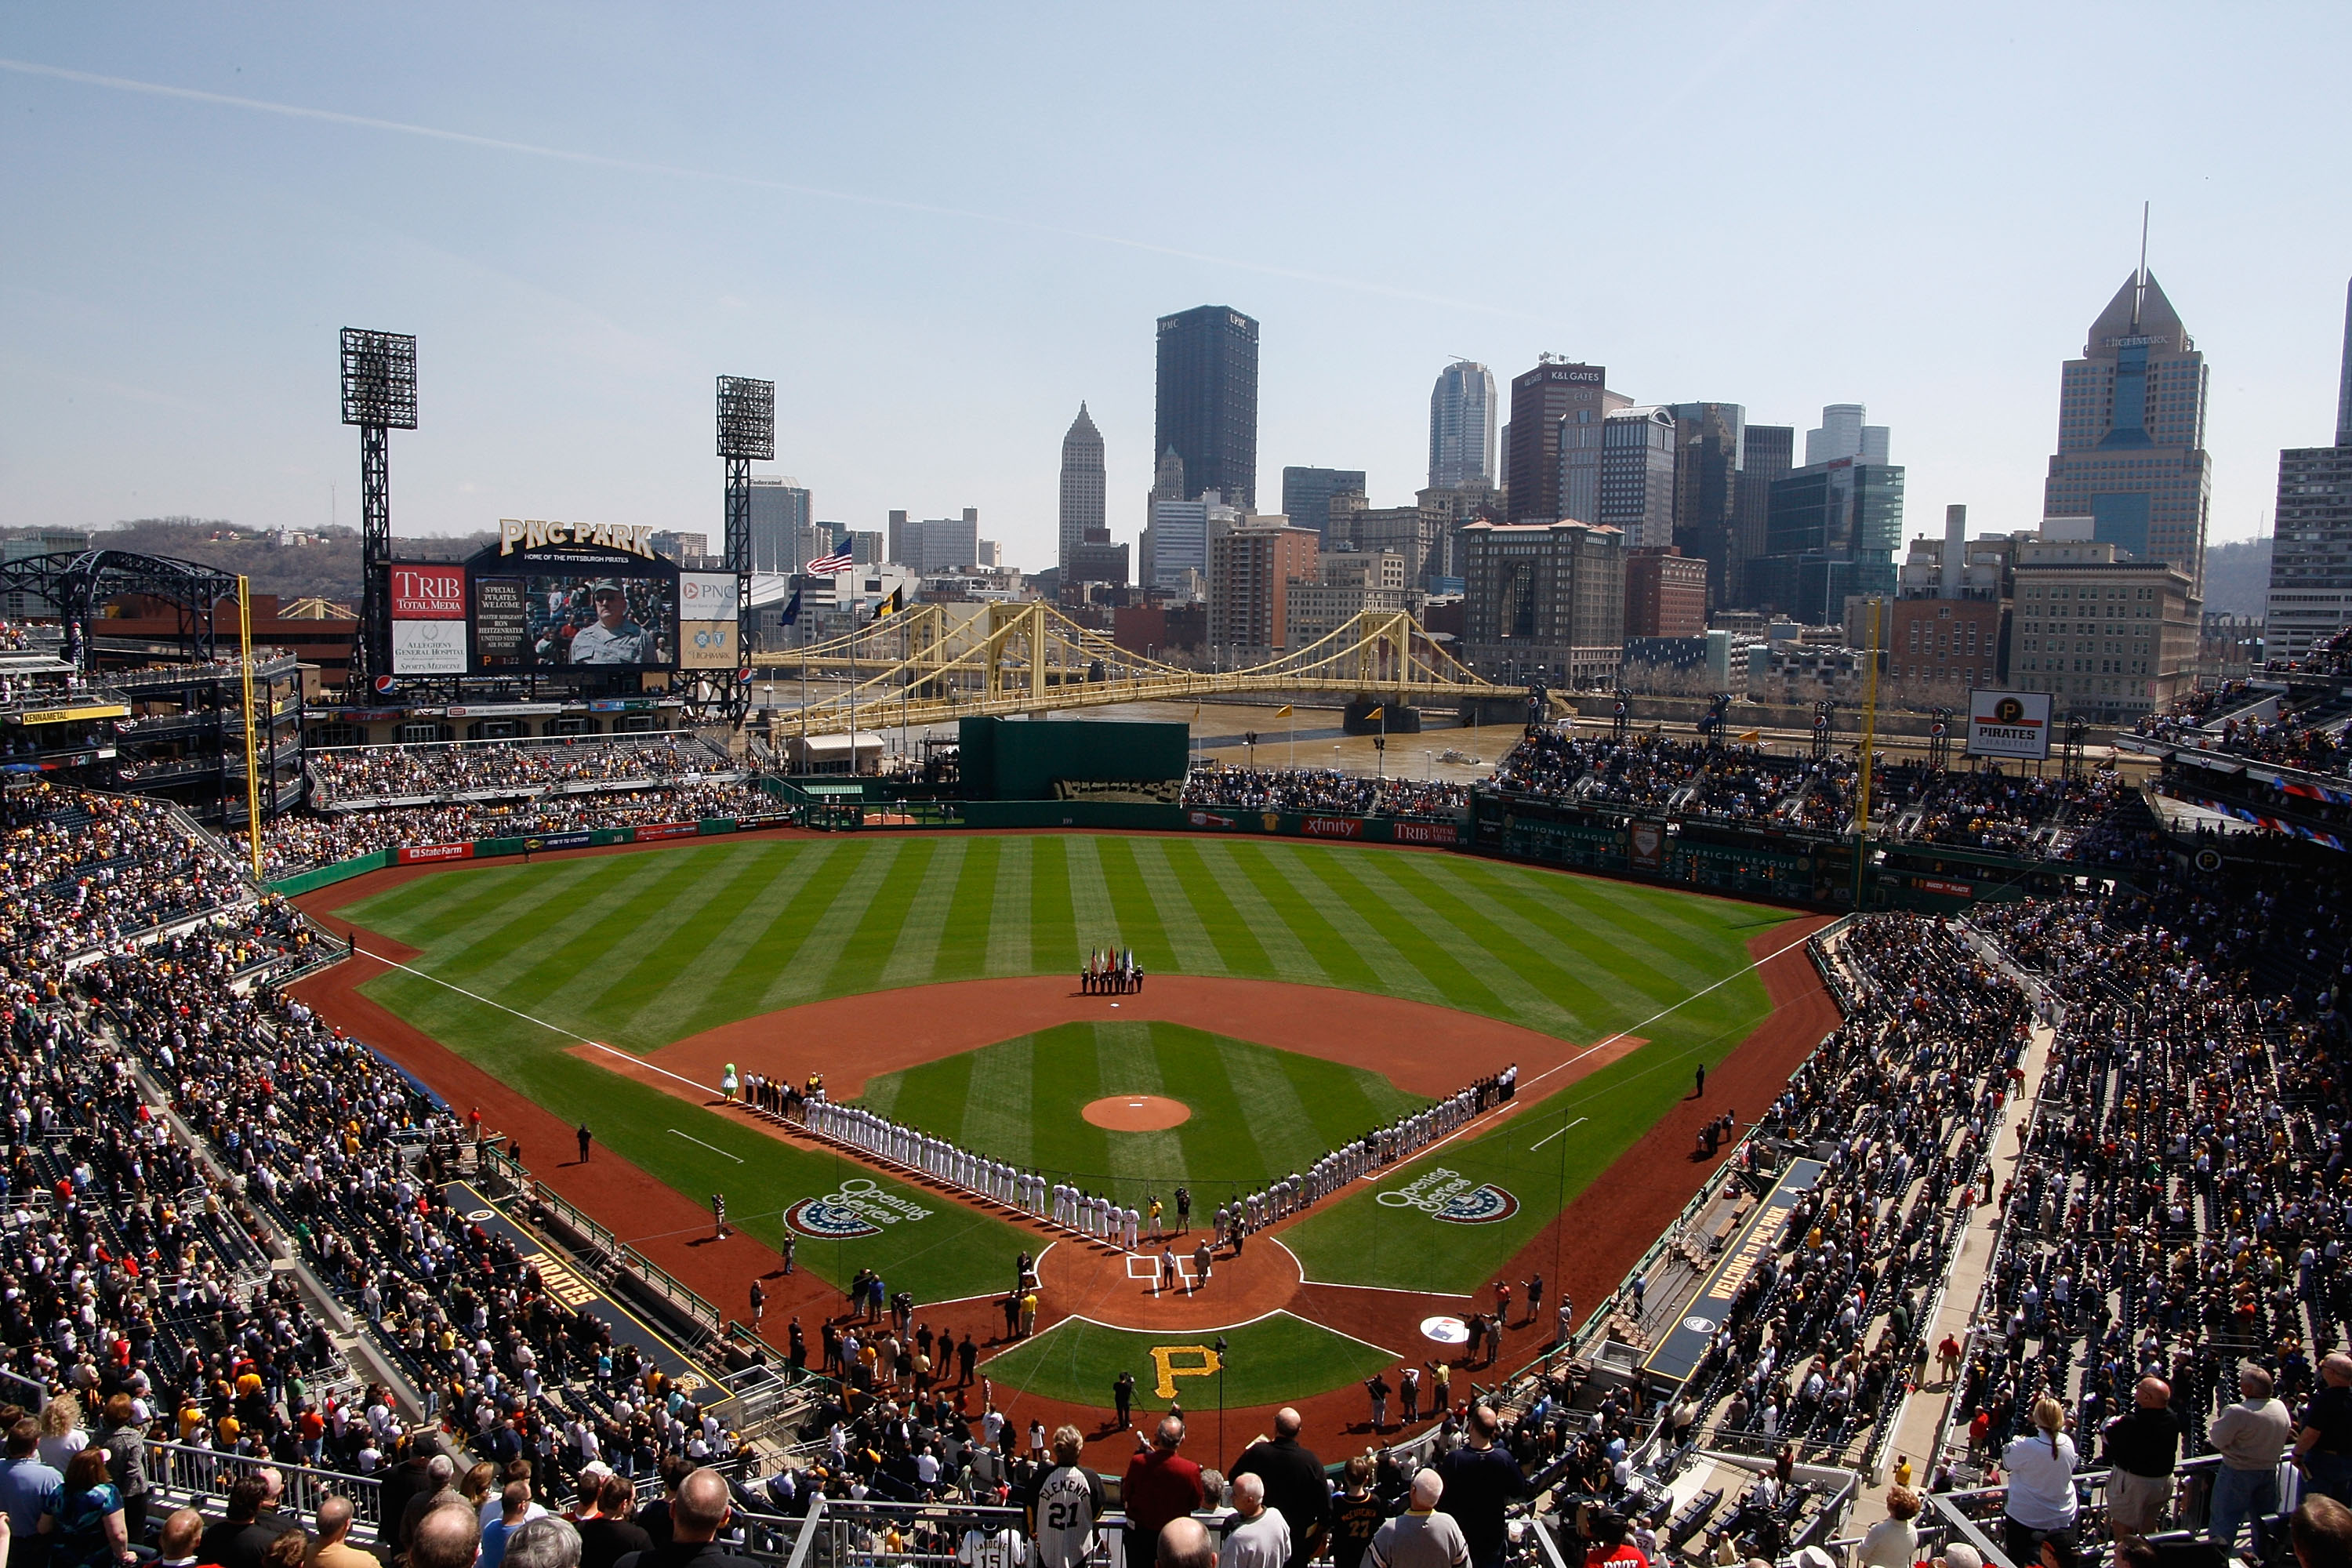 PITTSBURGH PIRATES baseball mlb db wallpaper background 3000x2000